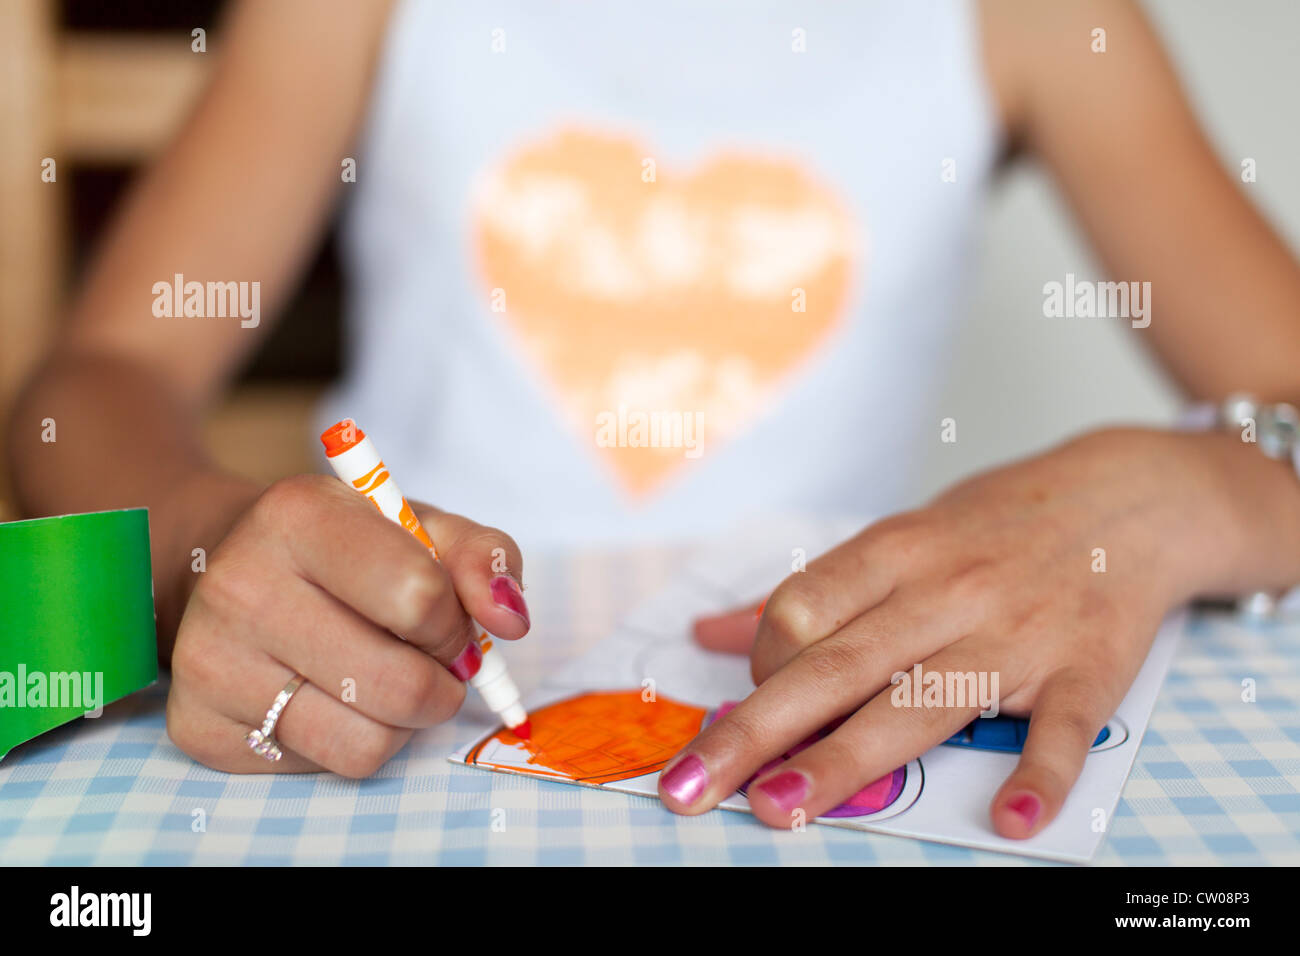 Young girl colouring in a picture. - Stock Image